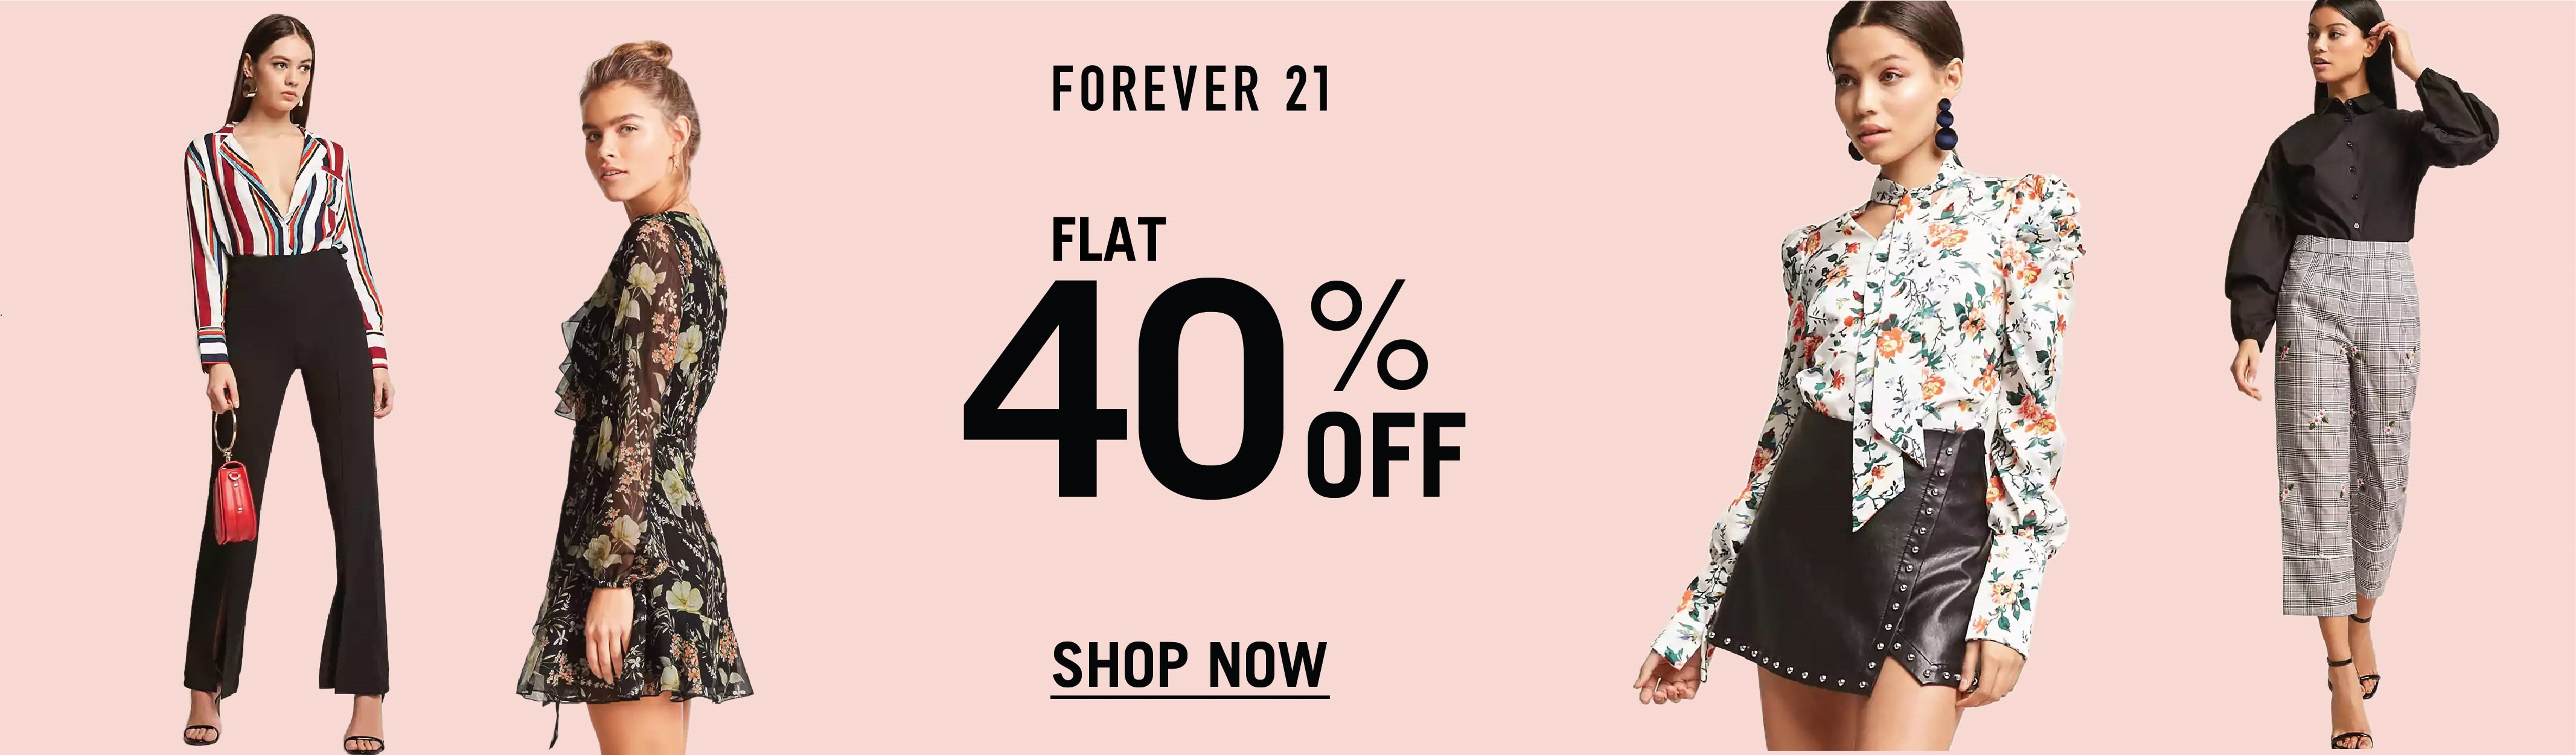 Forever 21: Flat 40% off